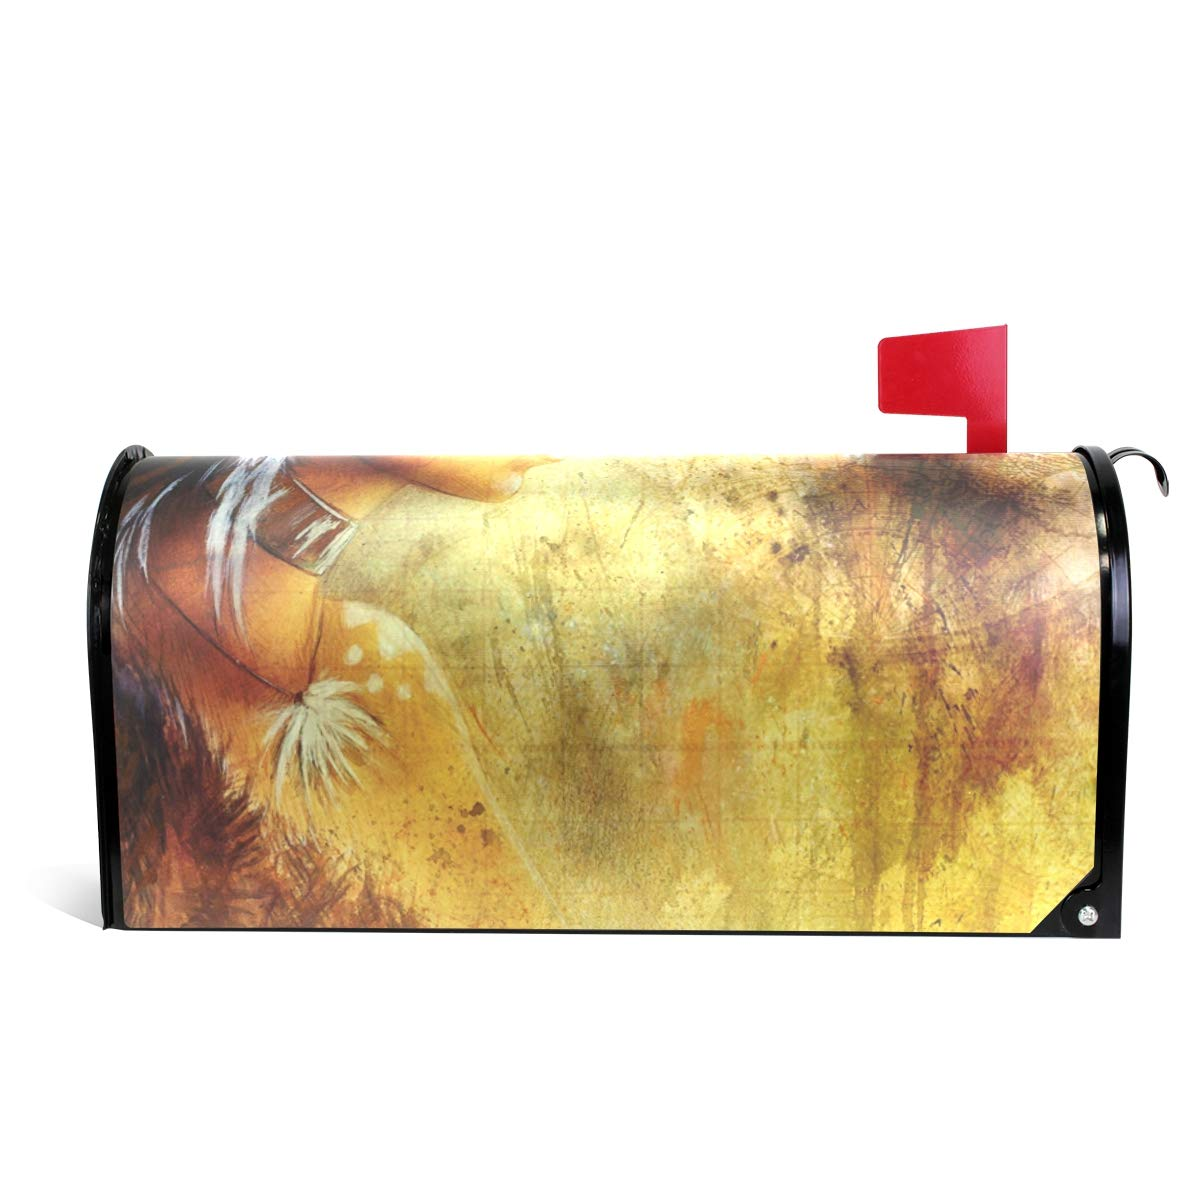 MAPOLO Indian Woman Wearing Feather Headdress with Wolf Magnetic Mailbox Cover Oversized